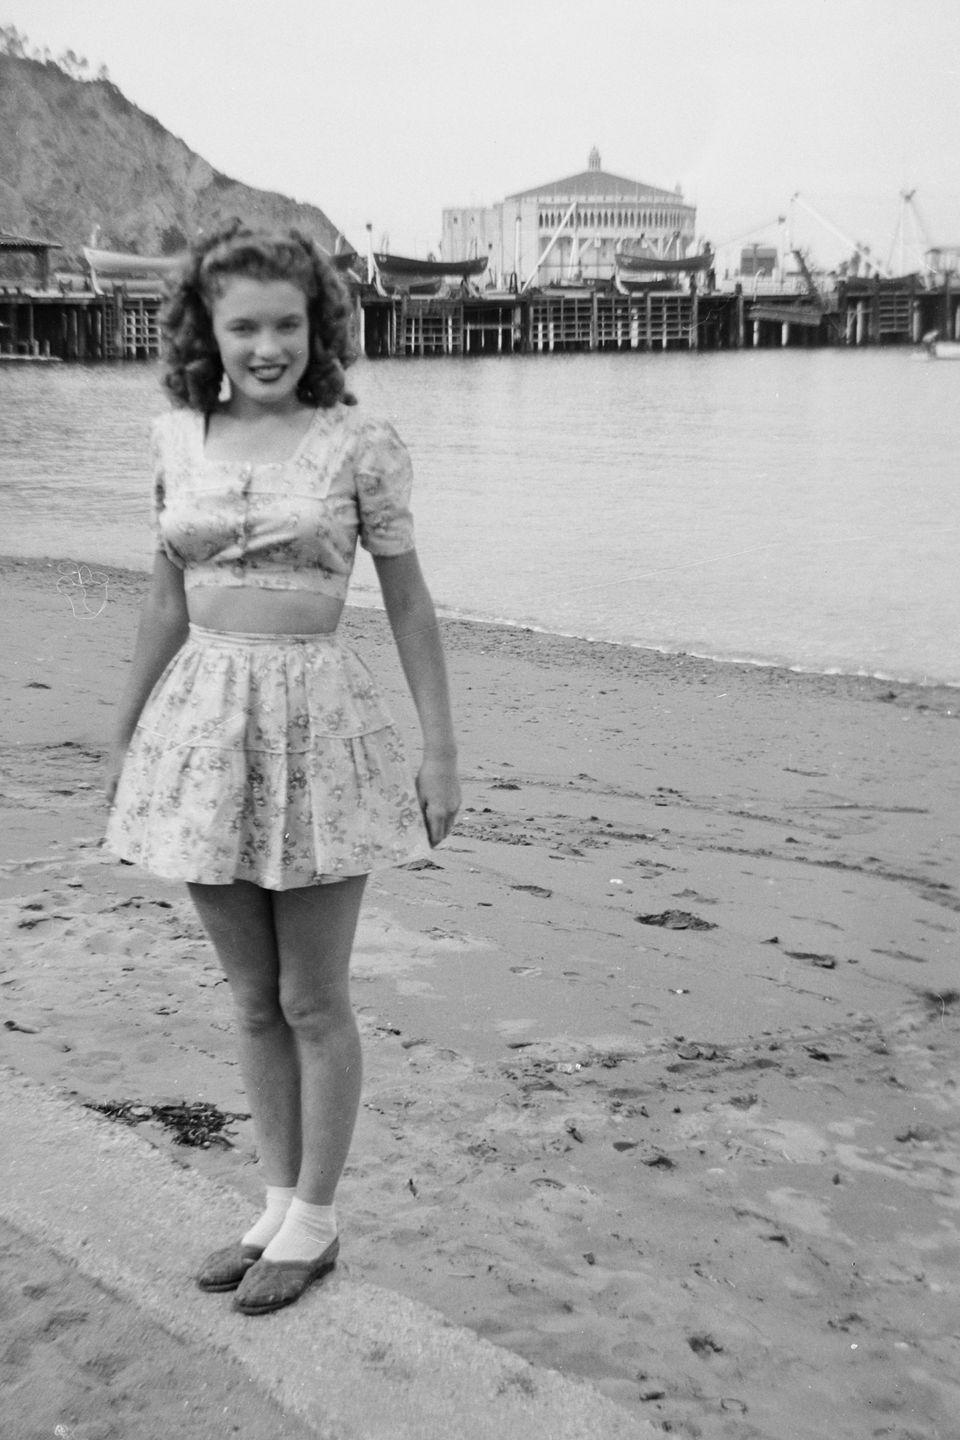 <p>Monroe on the beach at Santa Catalina Island with the Avalon Casino in the background. James was stationed on the island's boot camp, and the next year he was shipped out to the Pacific where he remained for two years. </p>